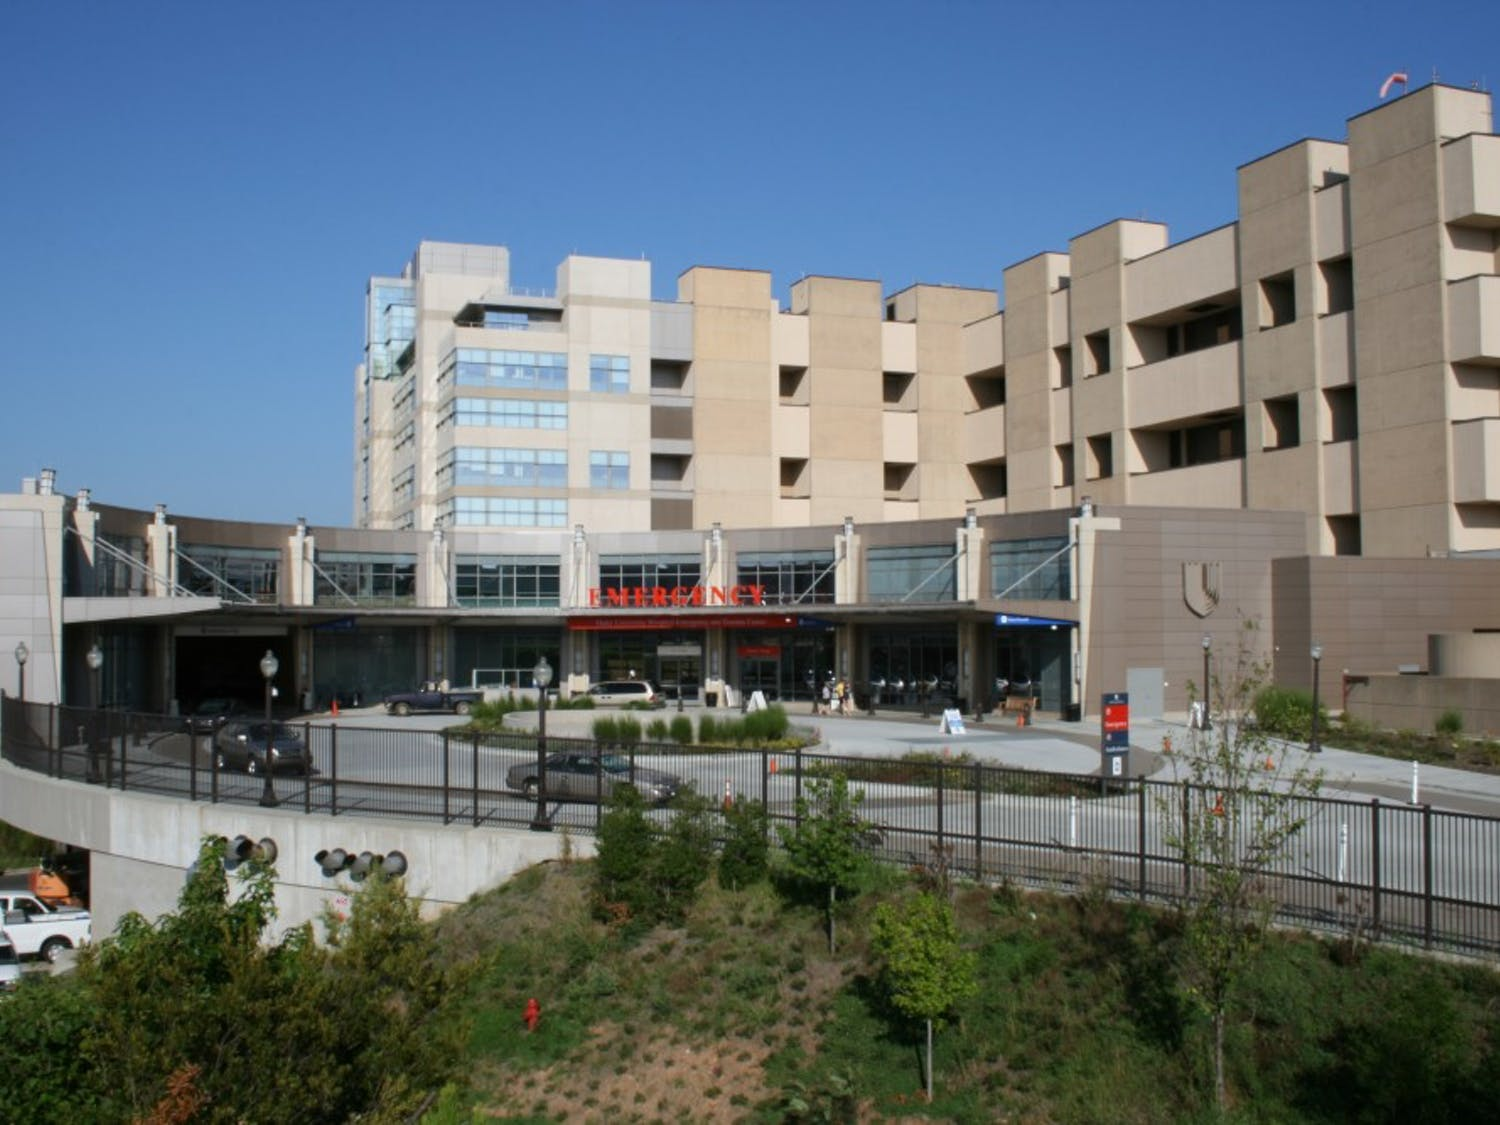 Emergency and Trauma Center at Duke University Hospital in Durham July, 24, 2008. (Ildar Sagdejev/ CC-BY-SA-3.0)